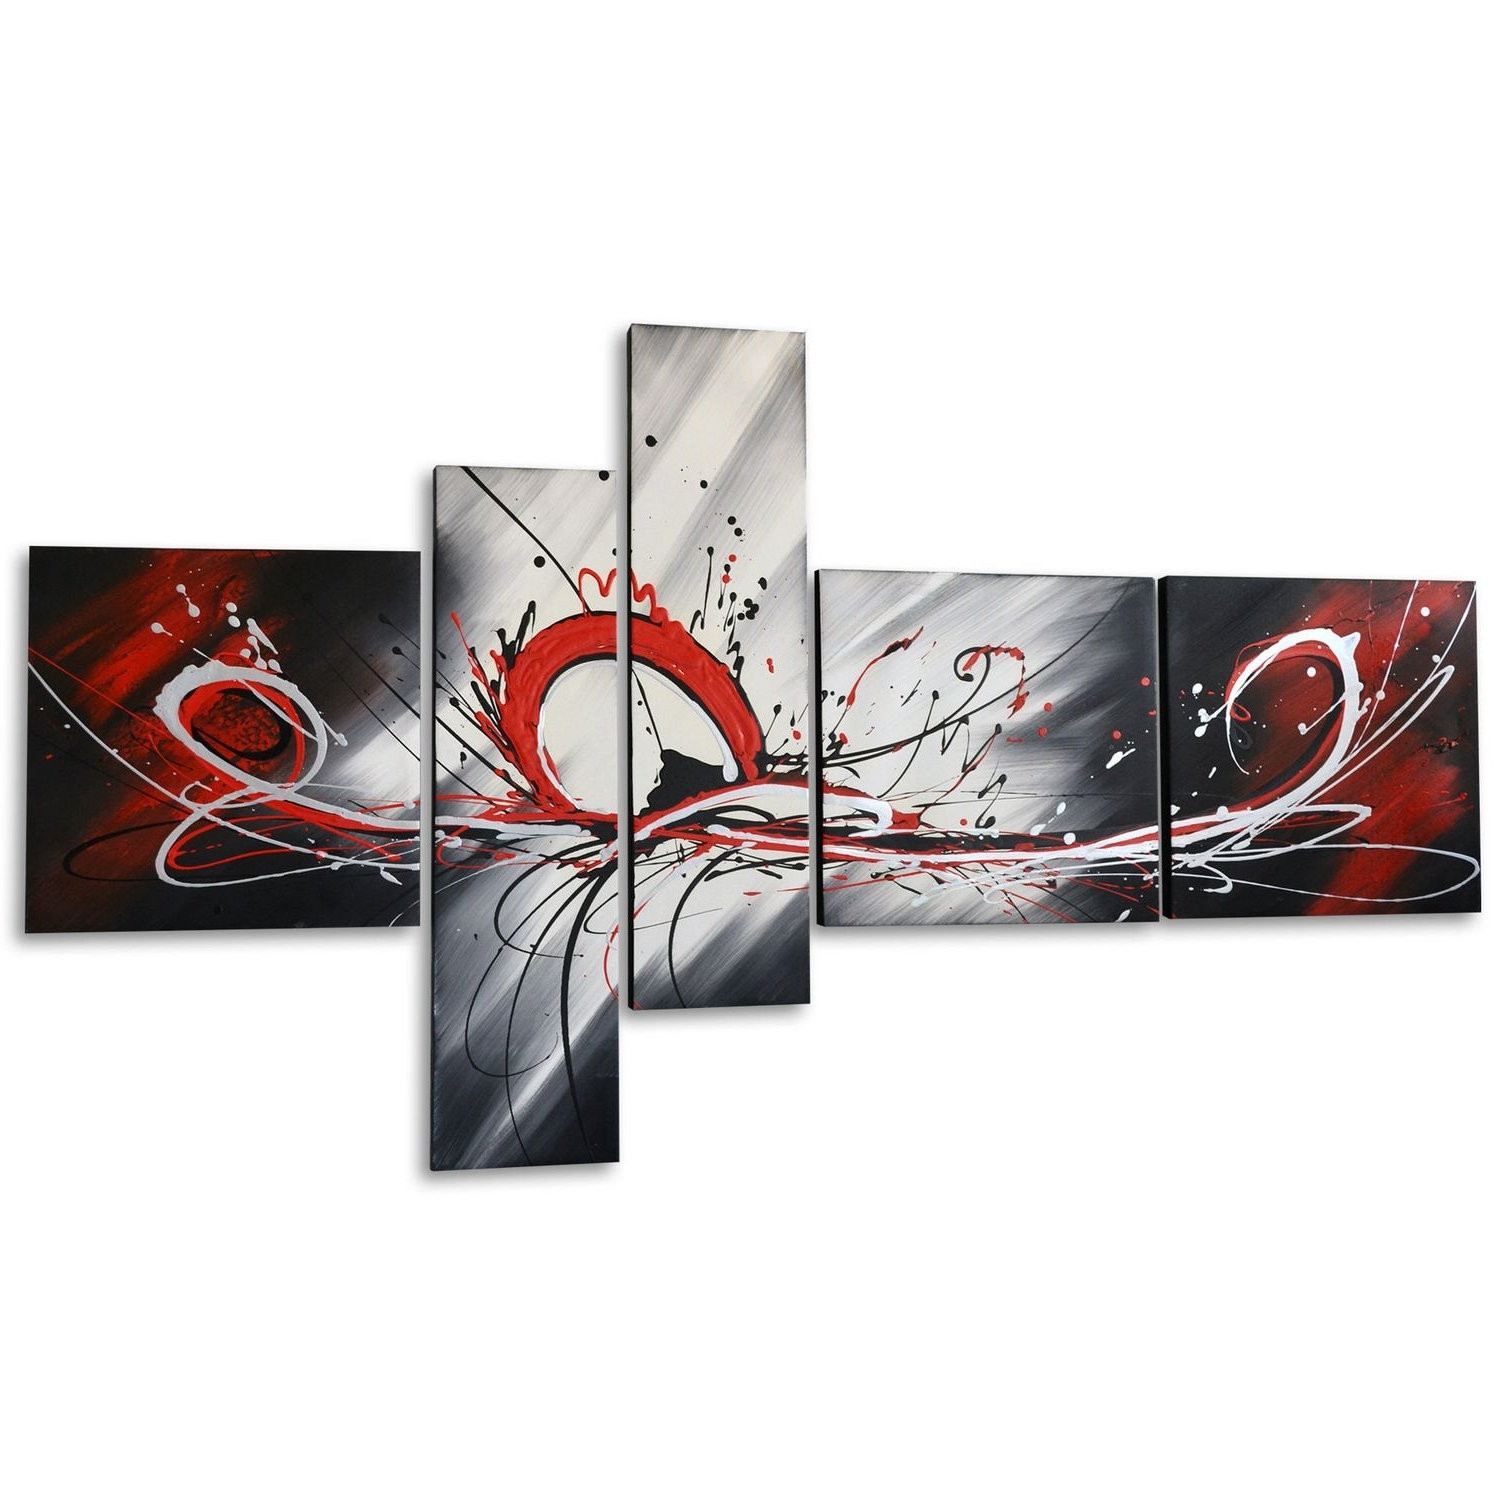 Most Current Canvas Wall Art At Walmart With Regard To Design Art – Red Splash Hand Painted Textured Oil Painting On (View 4 of 15)